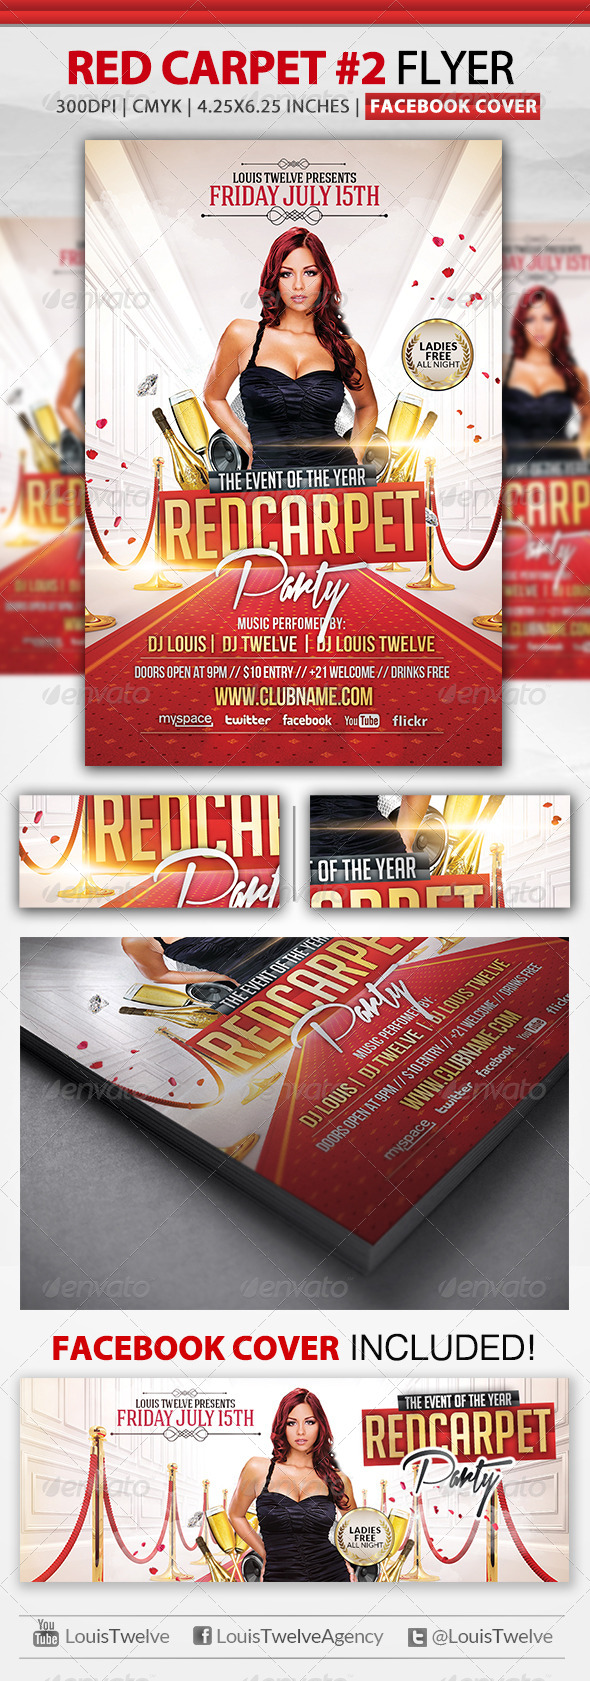 GraphicRiver Red Carpet Party 2 Flyer & Facebook Cover 4589637